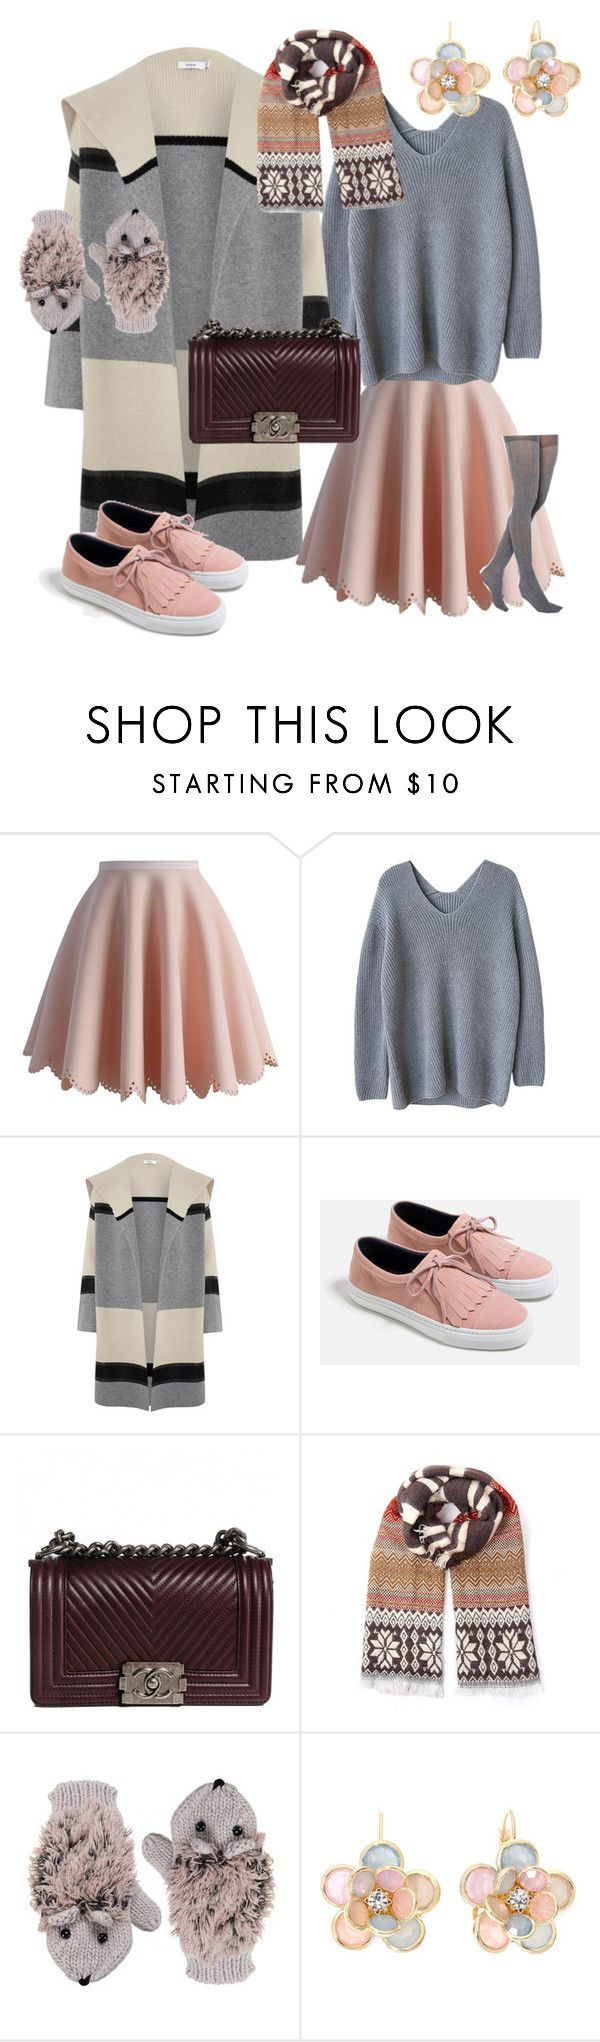 """подростки"" by marjanavoroncova ❤ liked on Polyvore featuring Chicwish, Vince, Zara, Chanel, Mixit and Gipsy"